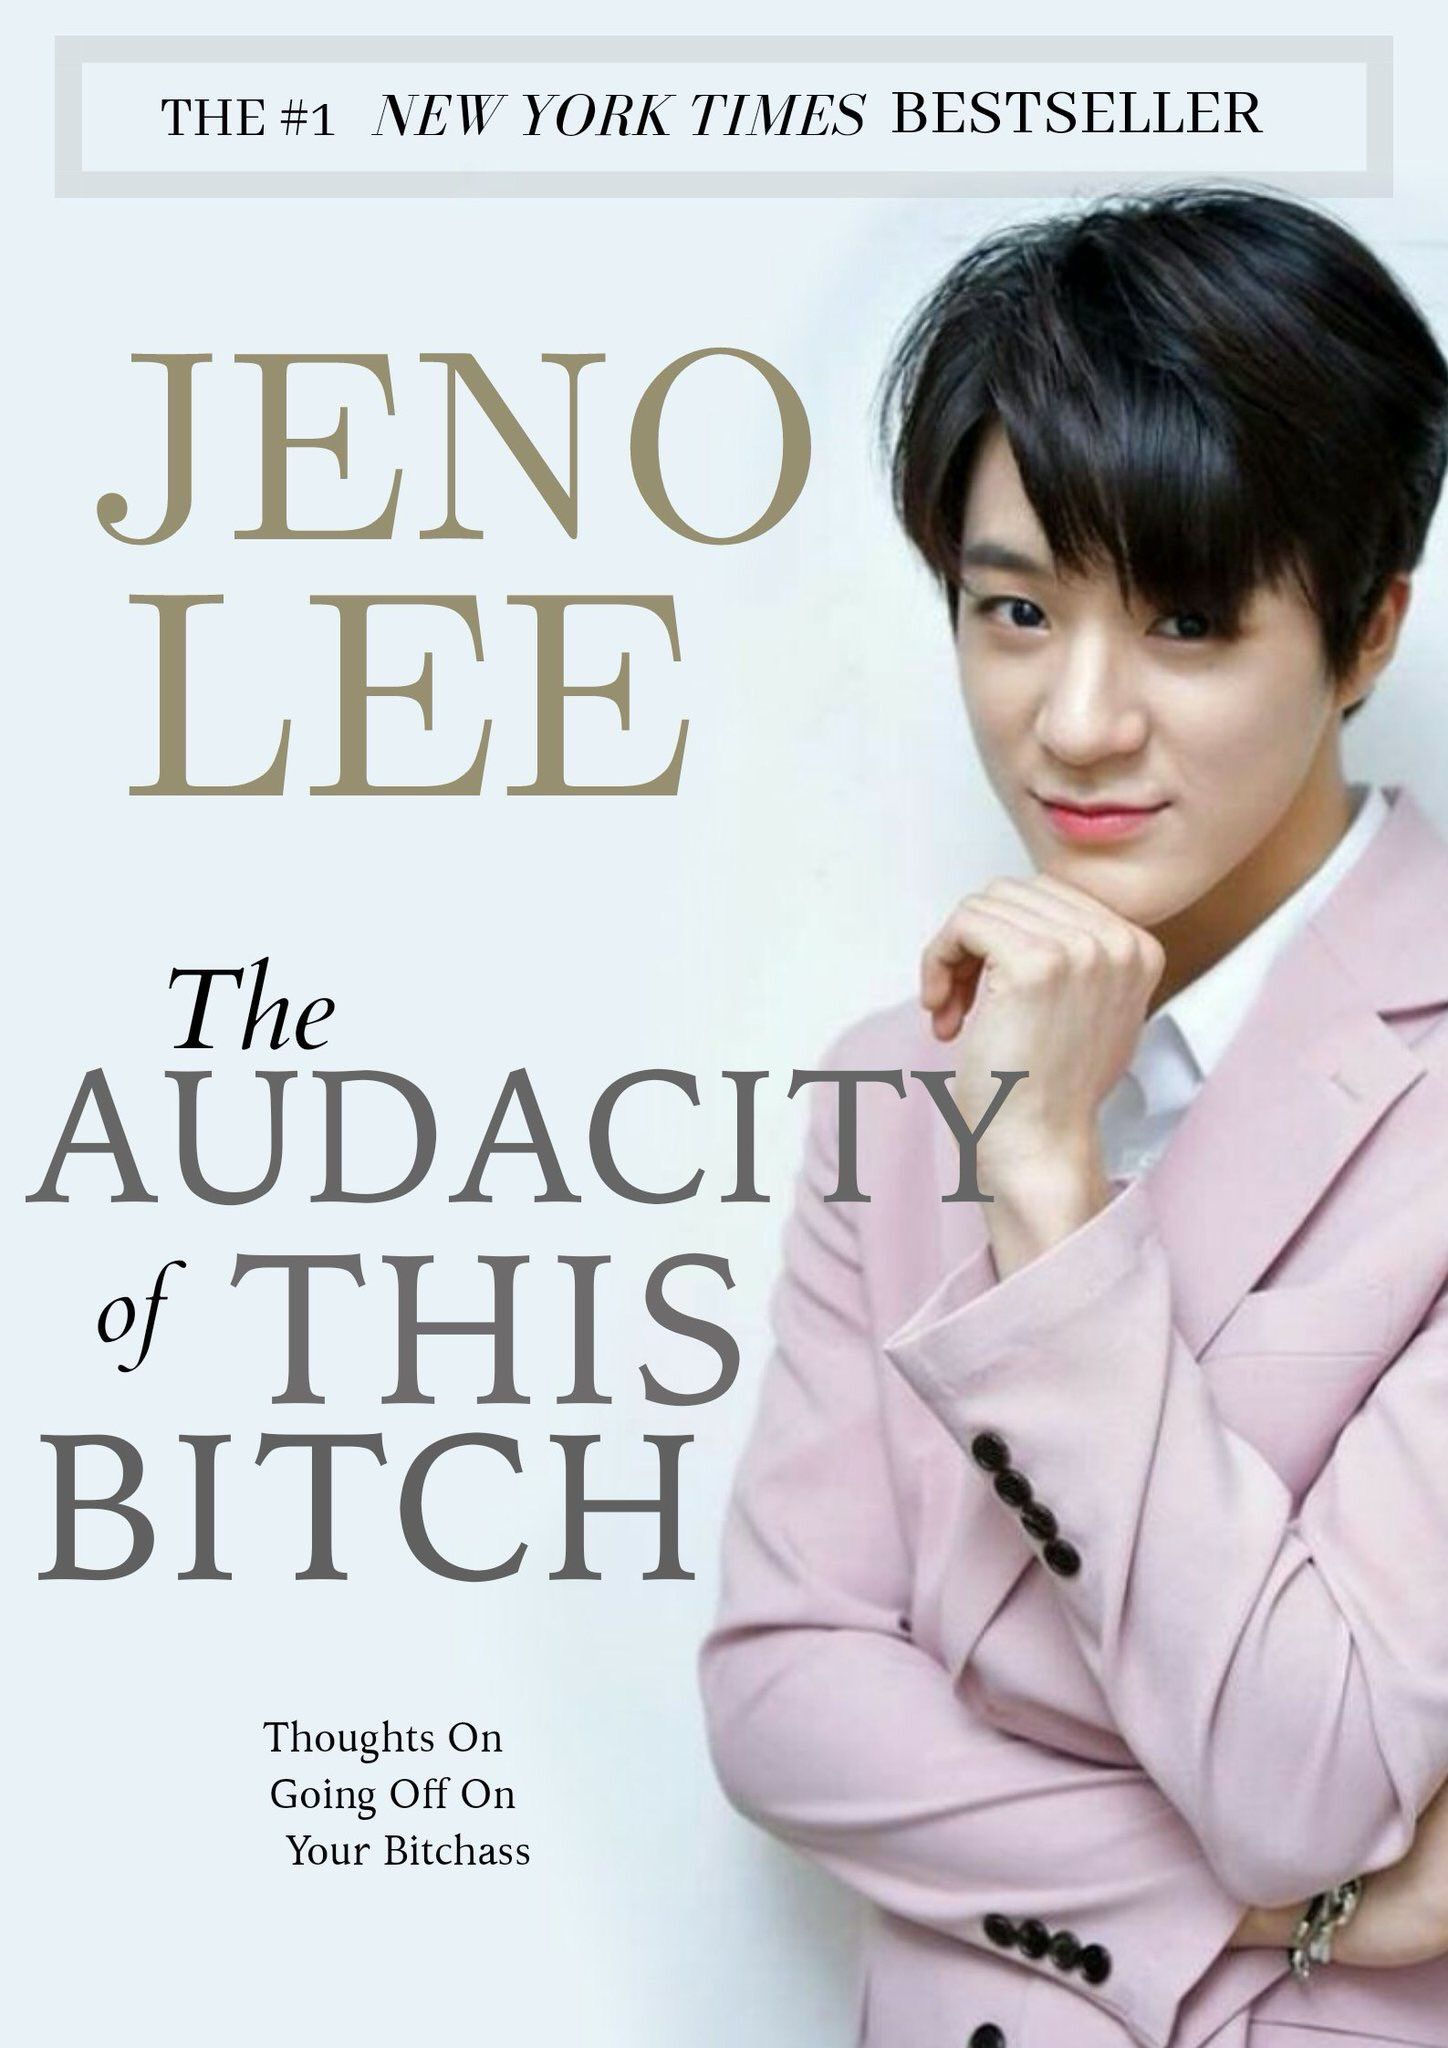 Pin by 𝘀𝘄𝗲𝗲𝘁𝗳𝗲𝘃𝗲𝗿 on NCT MEME BOARD | Nct, Jeno